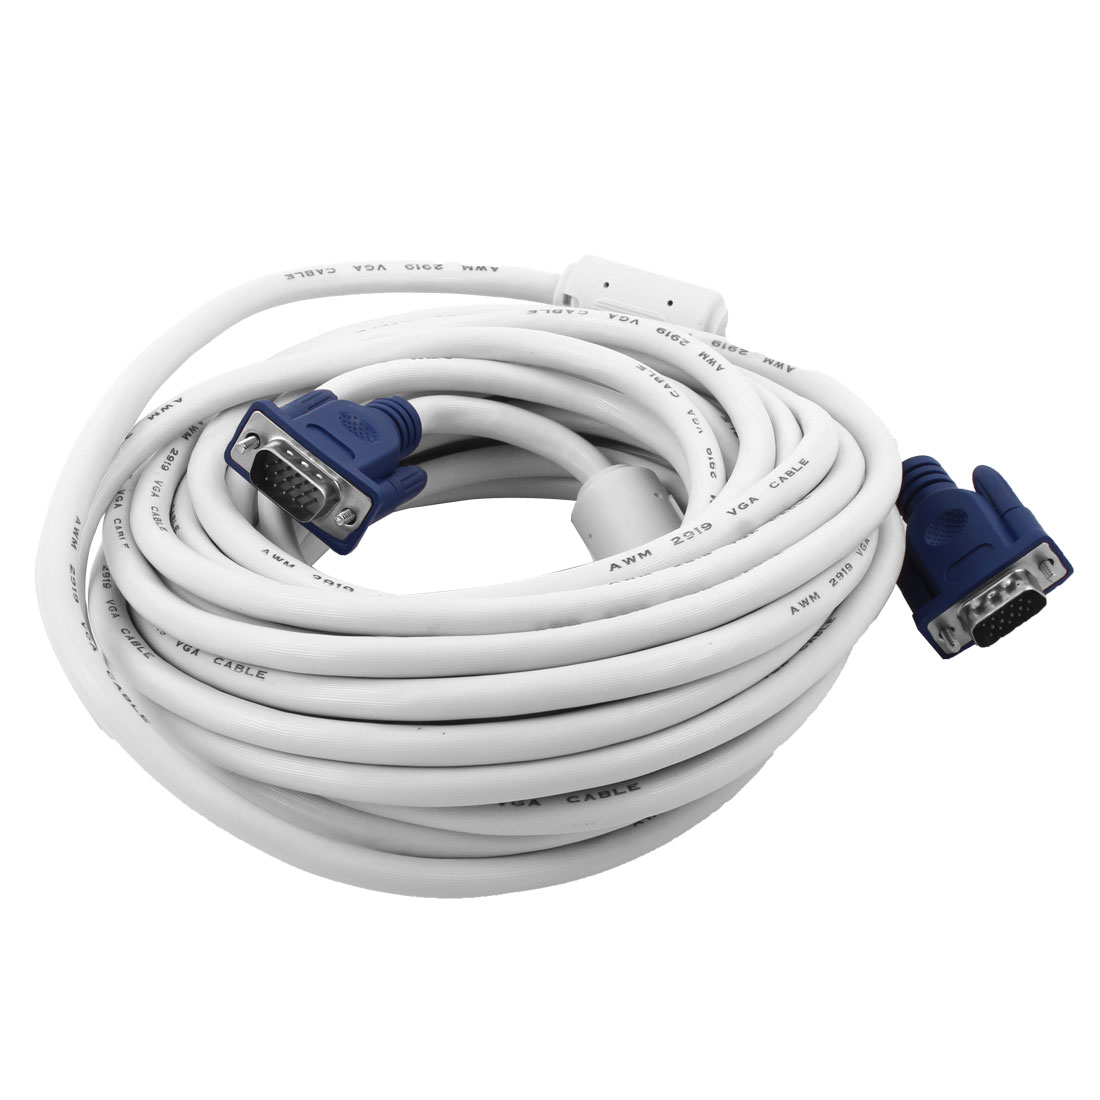 PC Computer Monitor VGA Male to Male Plug Extension Cable White Blue 32.8Ft Long